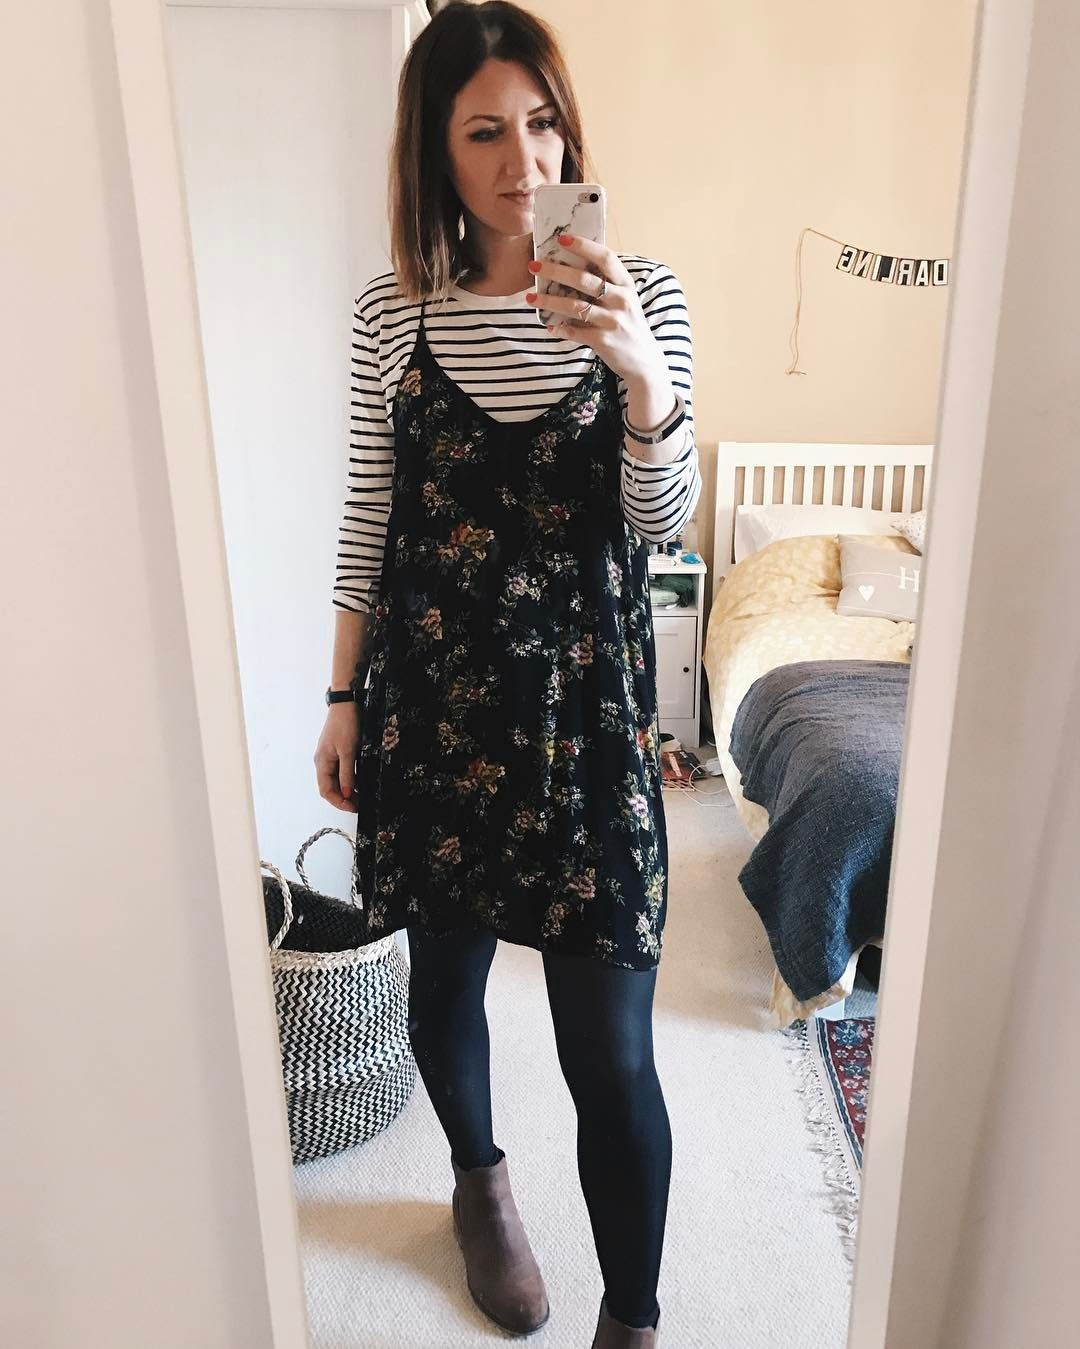 Layering. Floral slip dress by Urban Outfitters over a long sleeve strip top complete with tights and Boots. OOTD. Transition outfit - Hannah 🌿 (@hannahandtheblog) on Instagram